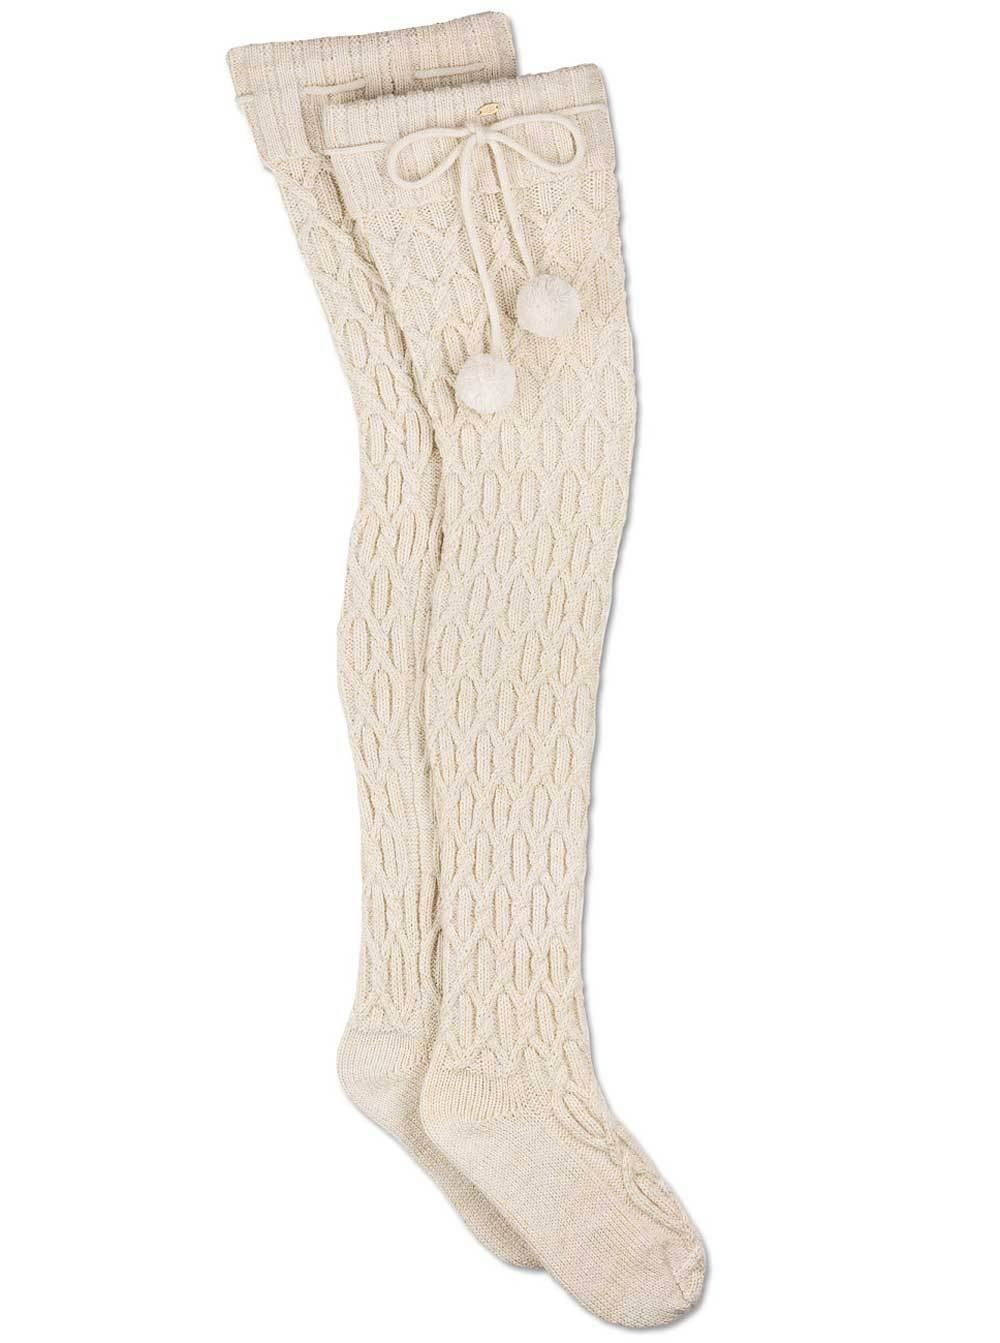 UGG Sparkle Cable Knit Cream with Gold Socks